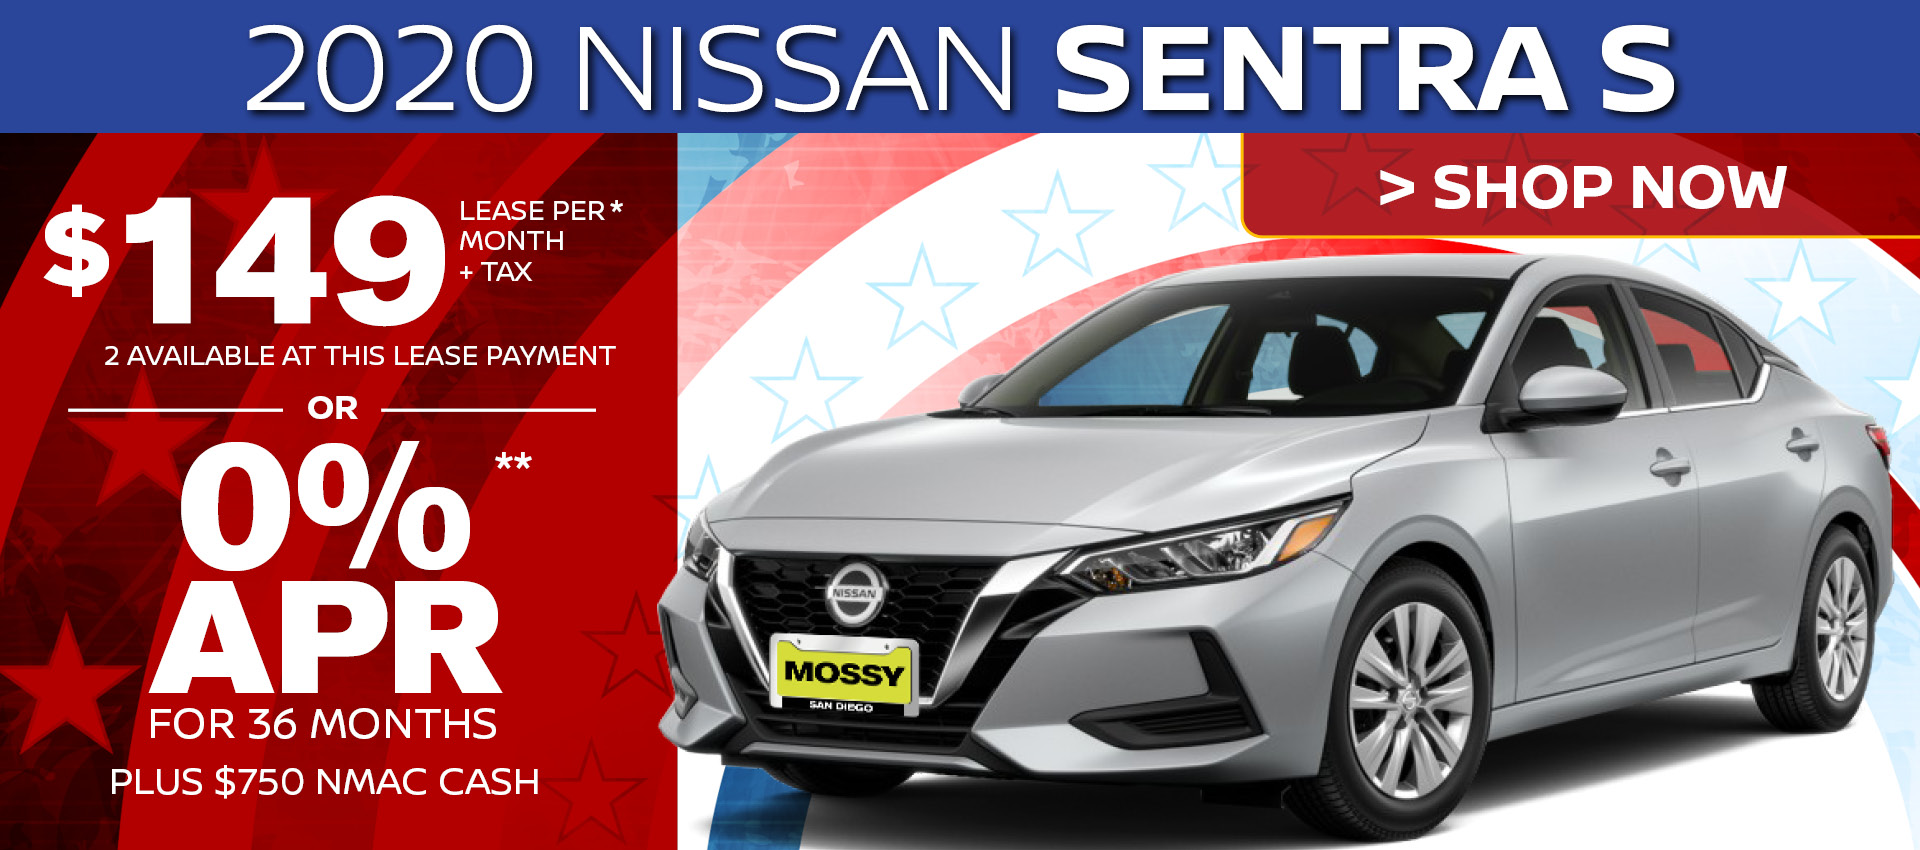 Mossy Nissan - 2020 Sentra - HP